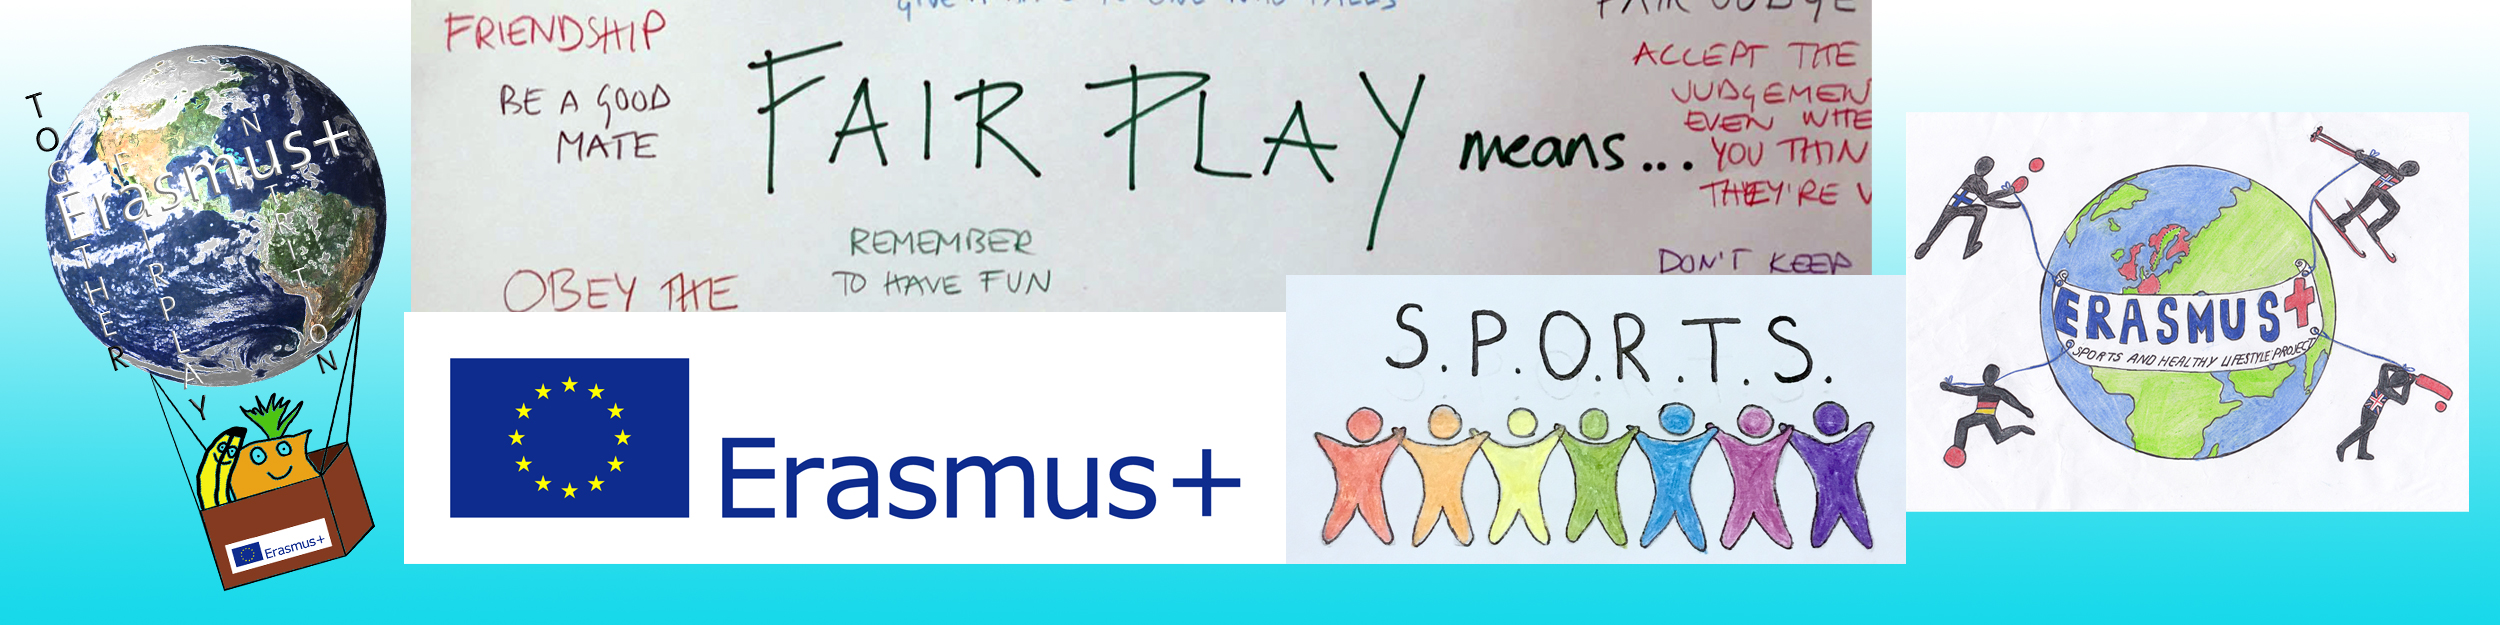 Fairplay: Peace and tolerance through S.P.O.R.T.S • Erasmus+